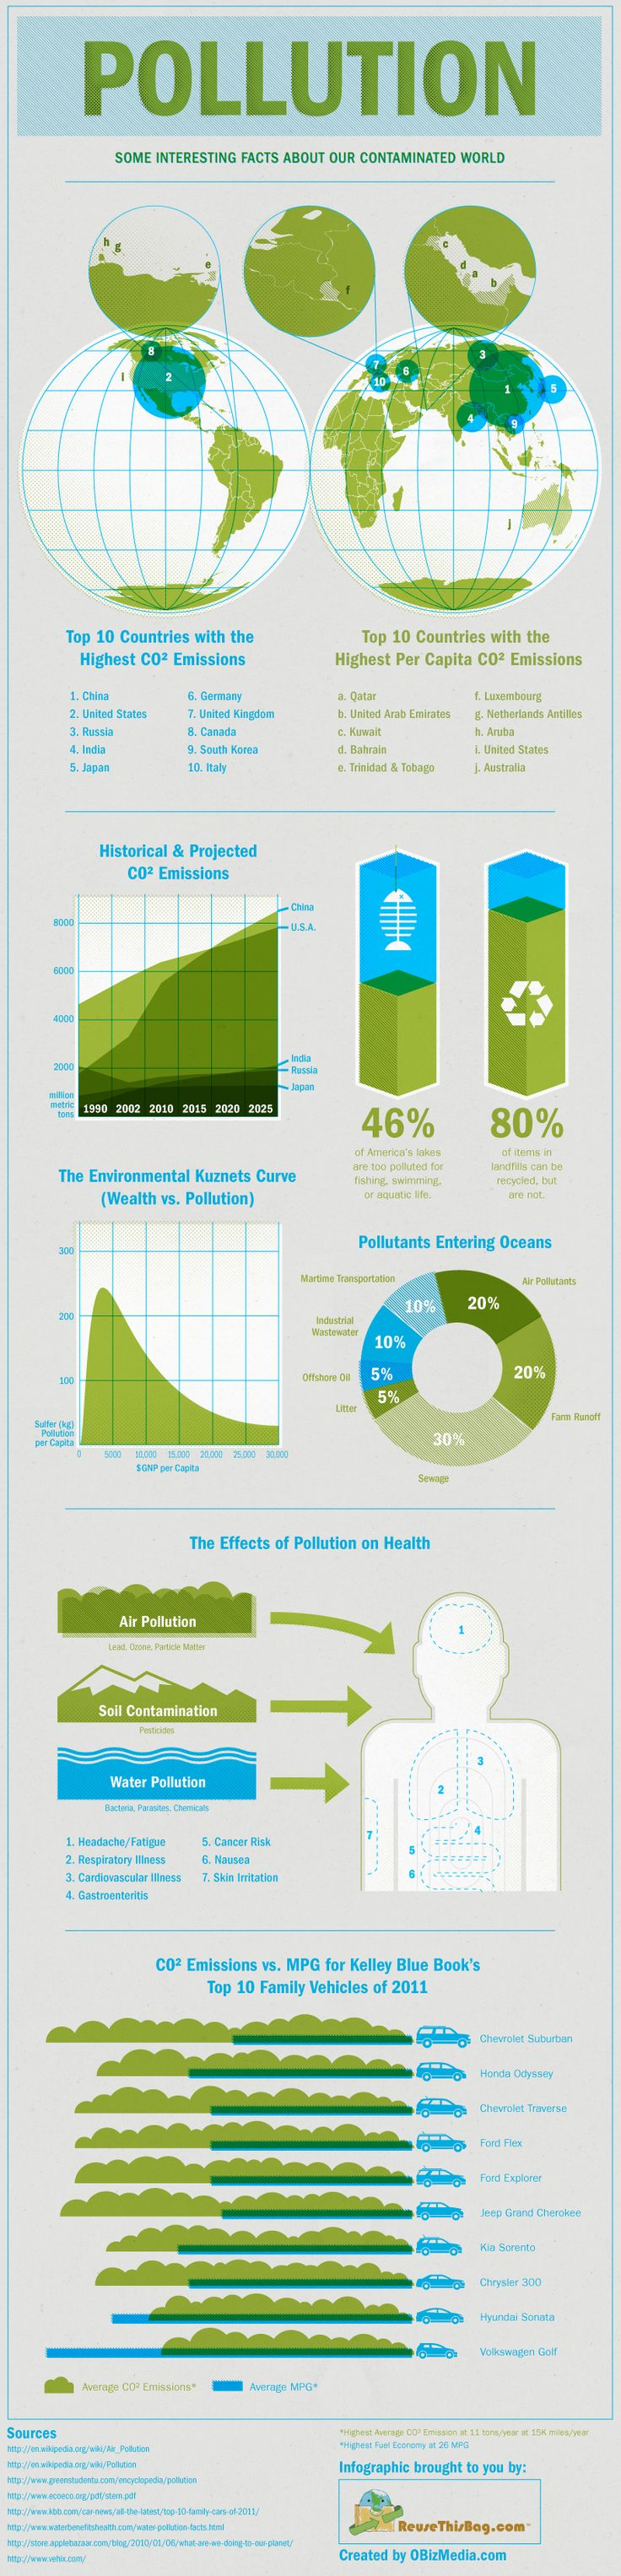 CO2 Emissions & Pollution